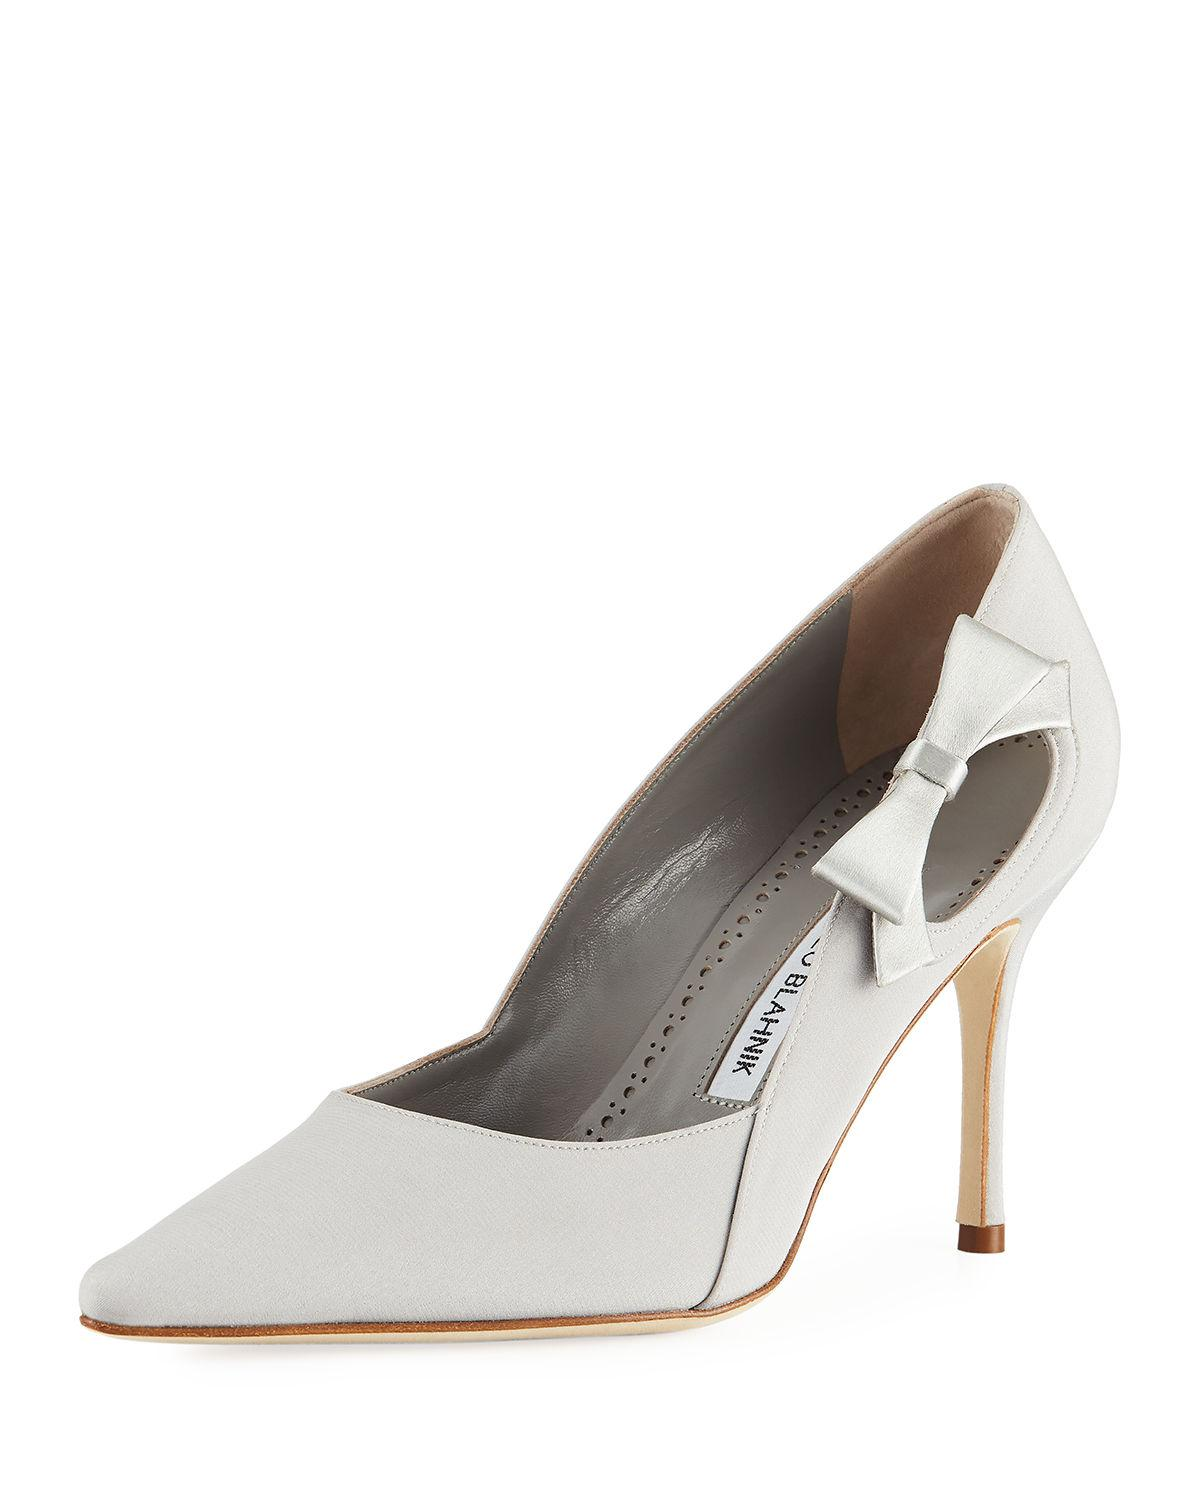 9801c8c52d Manolo Blahnik Tracee Satin Bow Pump in Gray - Save 20% - Lyst